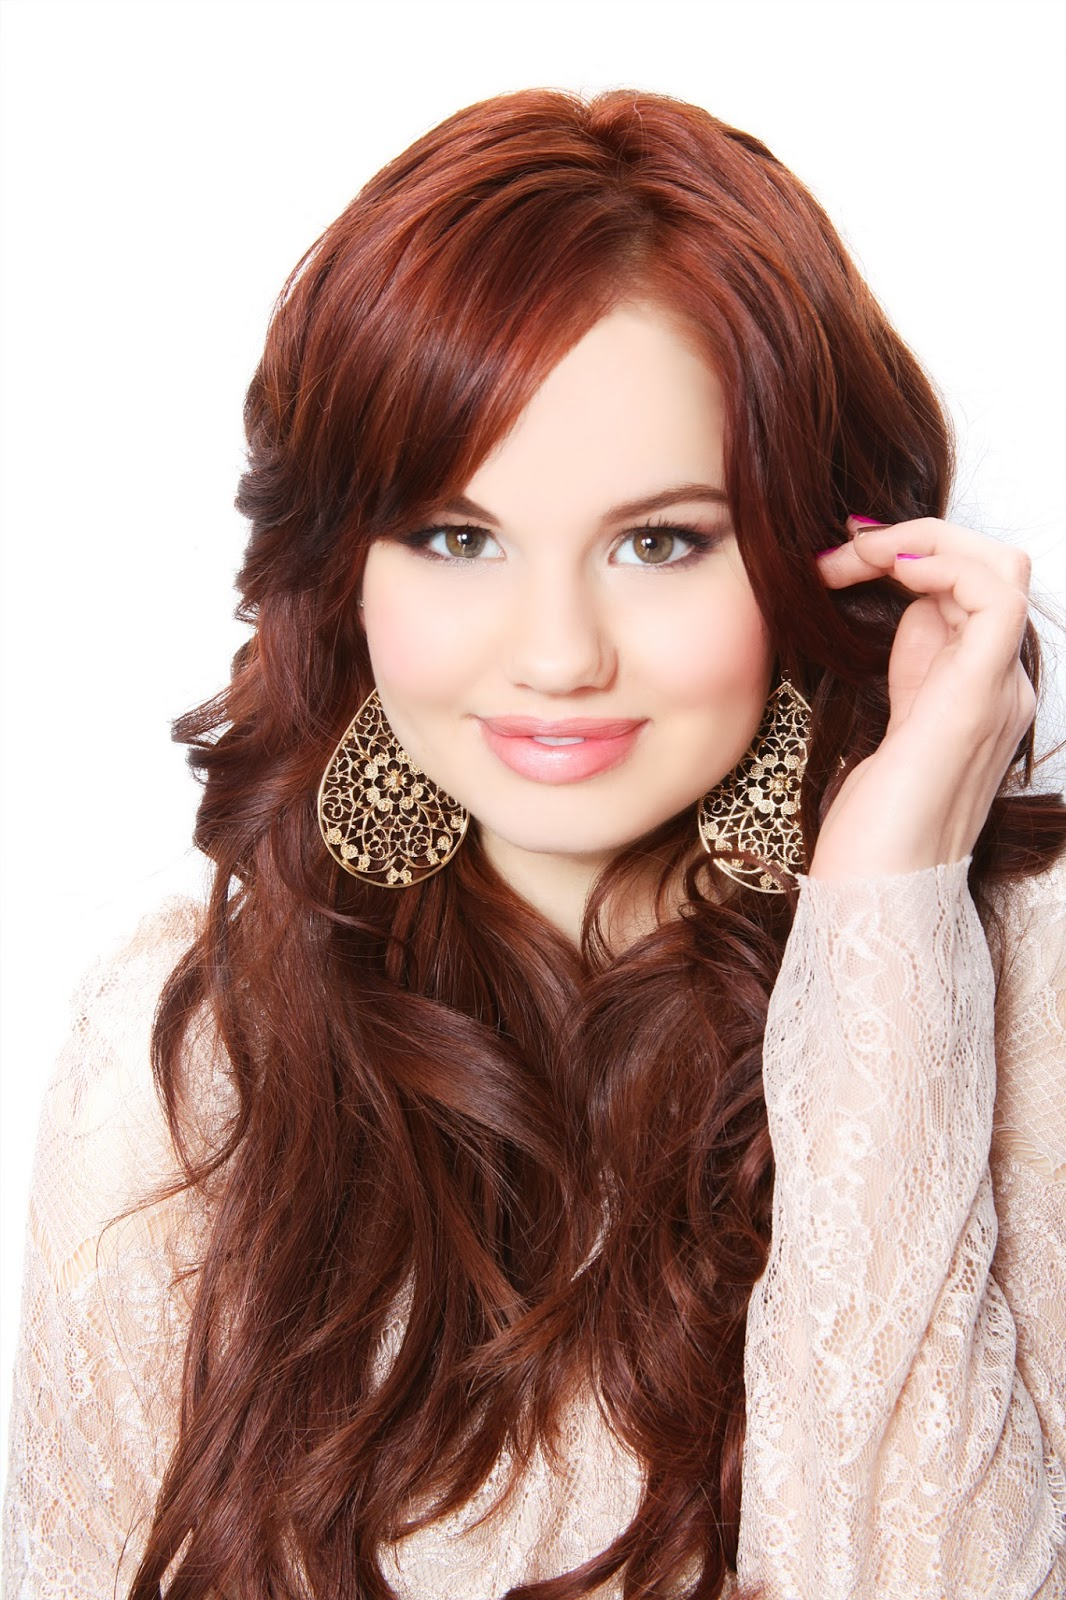 Independentmami debby ryan star of disney channels hit series jessie on sunday march 30th 2014 on the mcdonalds dream discovery stage at 400pm m4hsunfo